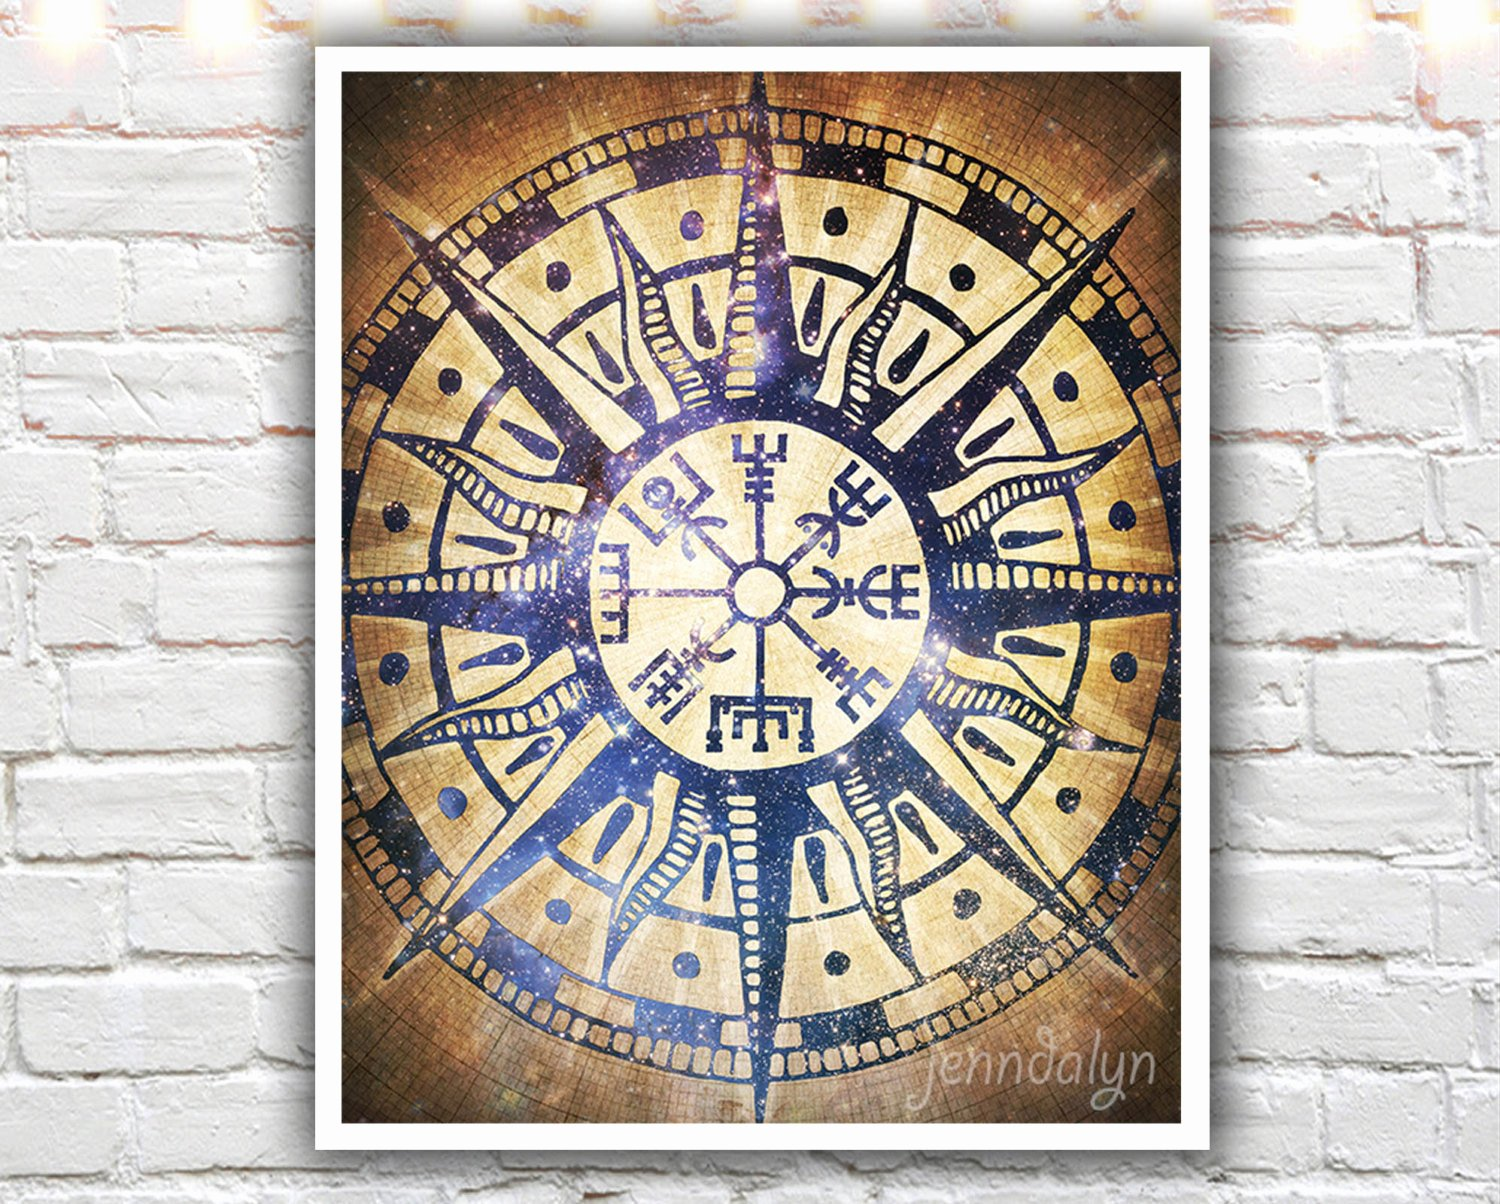 Compass Rose Print Out Unique Vegvsir Icelandic Design Viking Pass Rose Print